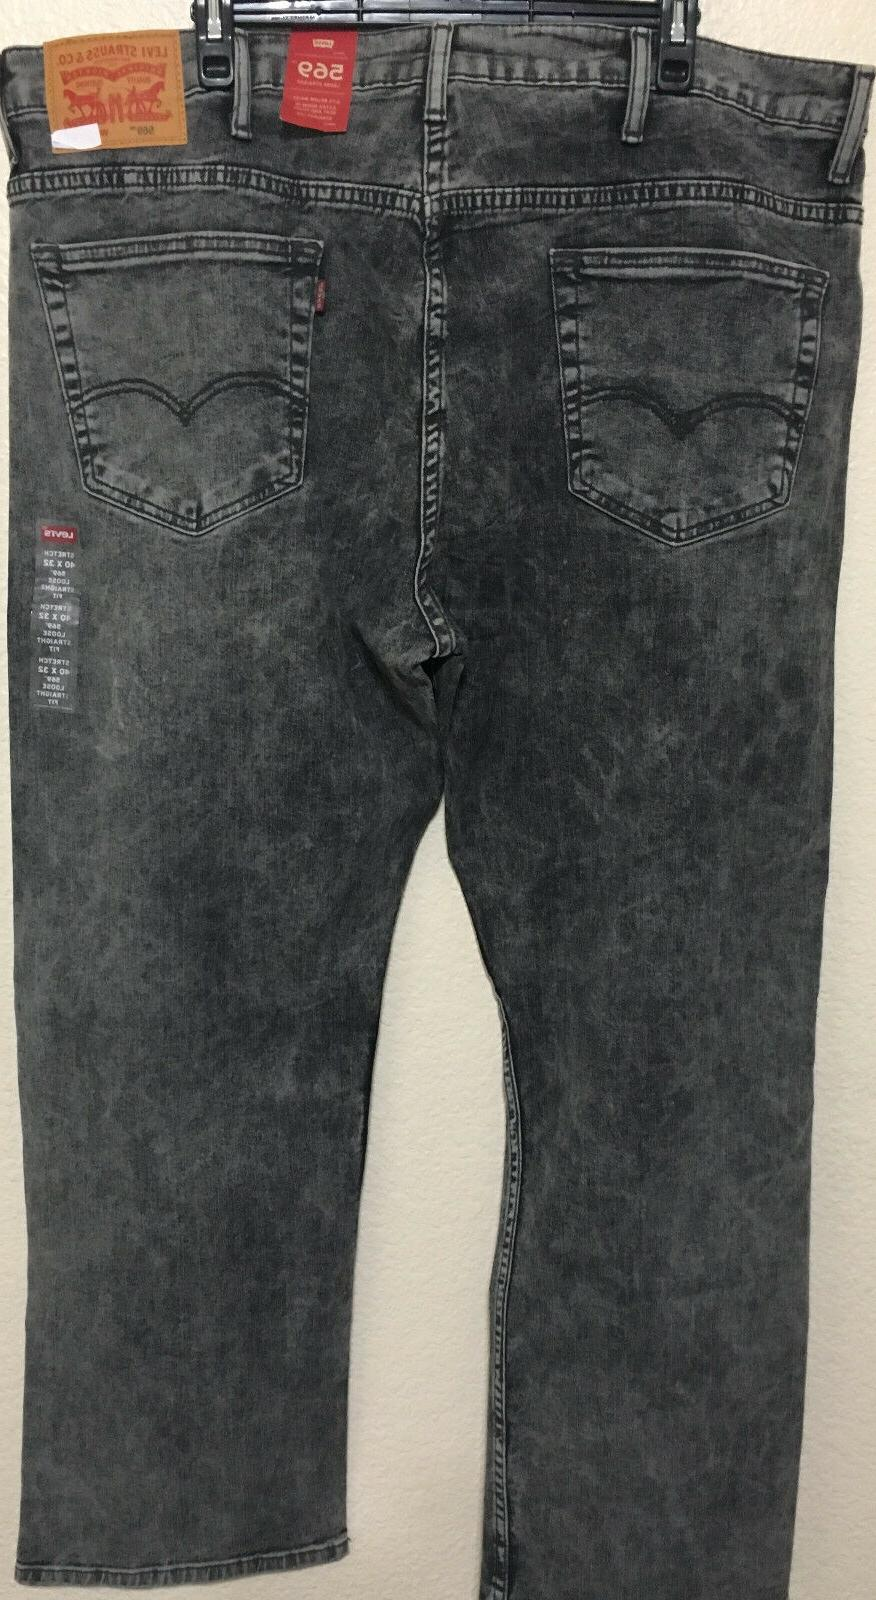 NWT 0243 RELAXED STRAIGHT LEG STRETCH PANT CHARCOAL DENIM